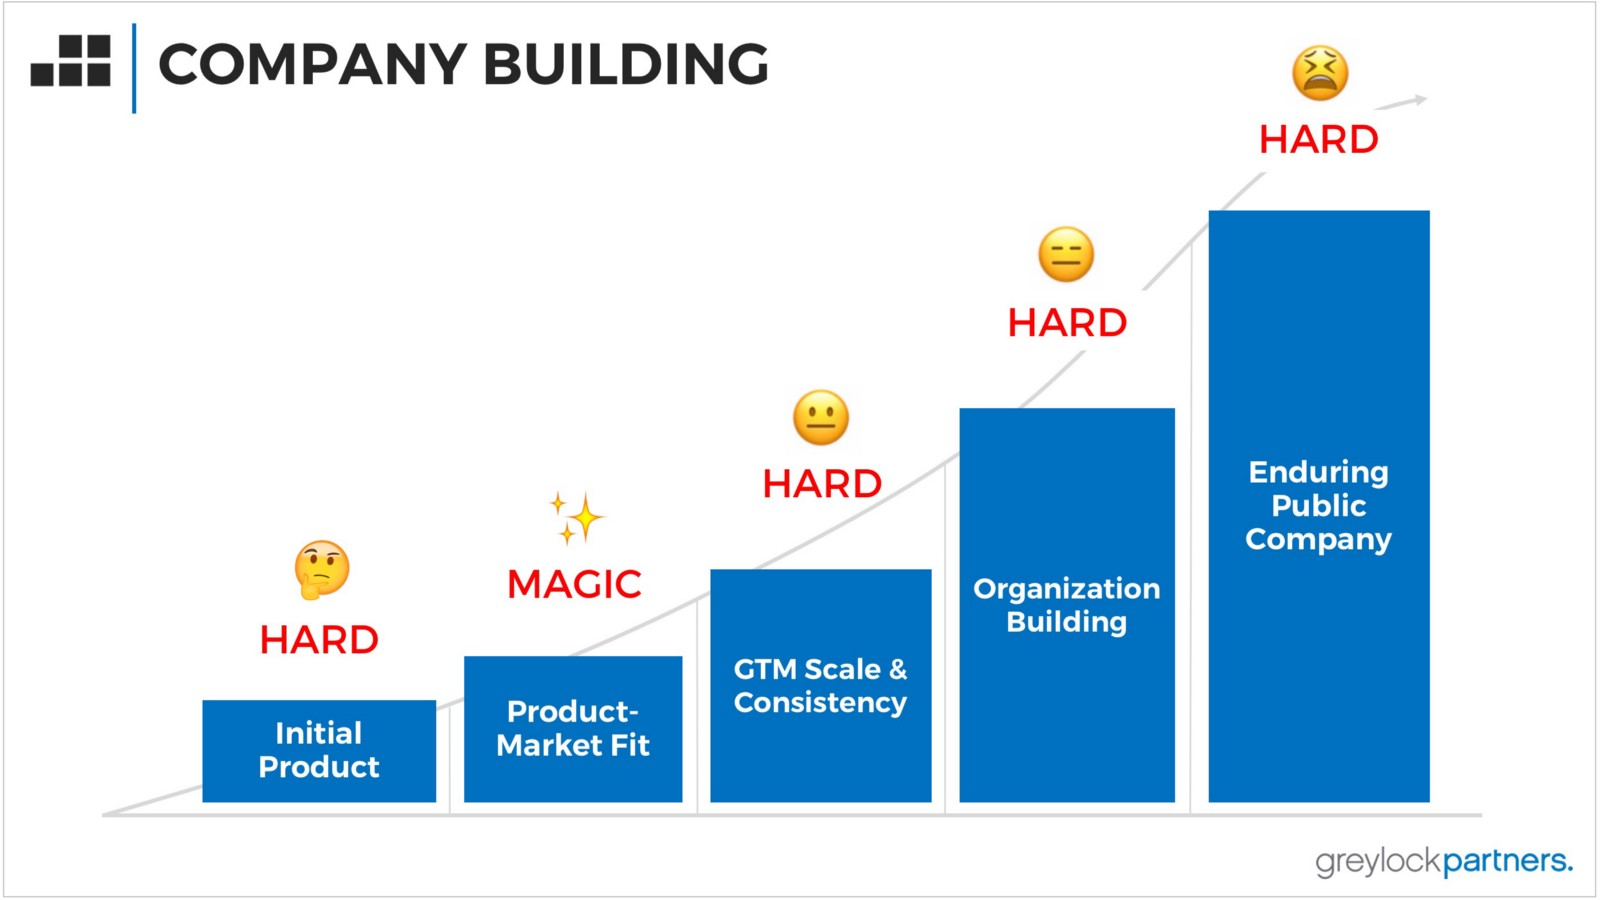 Let s look at it from an investment prospective if a company had - Each Stage Of Company Building Carries Different Risks From A Maniacal Focus On Defining An Initial Product And Just Shipping It To The Iteration Of